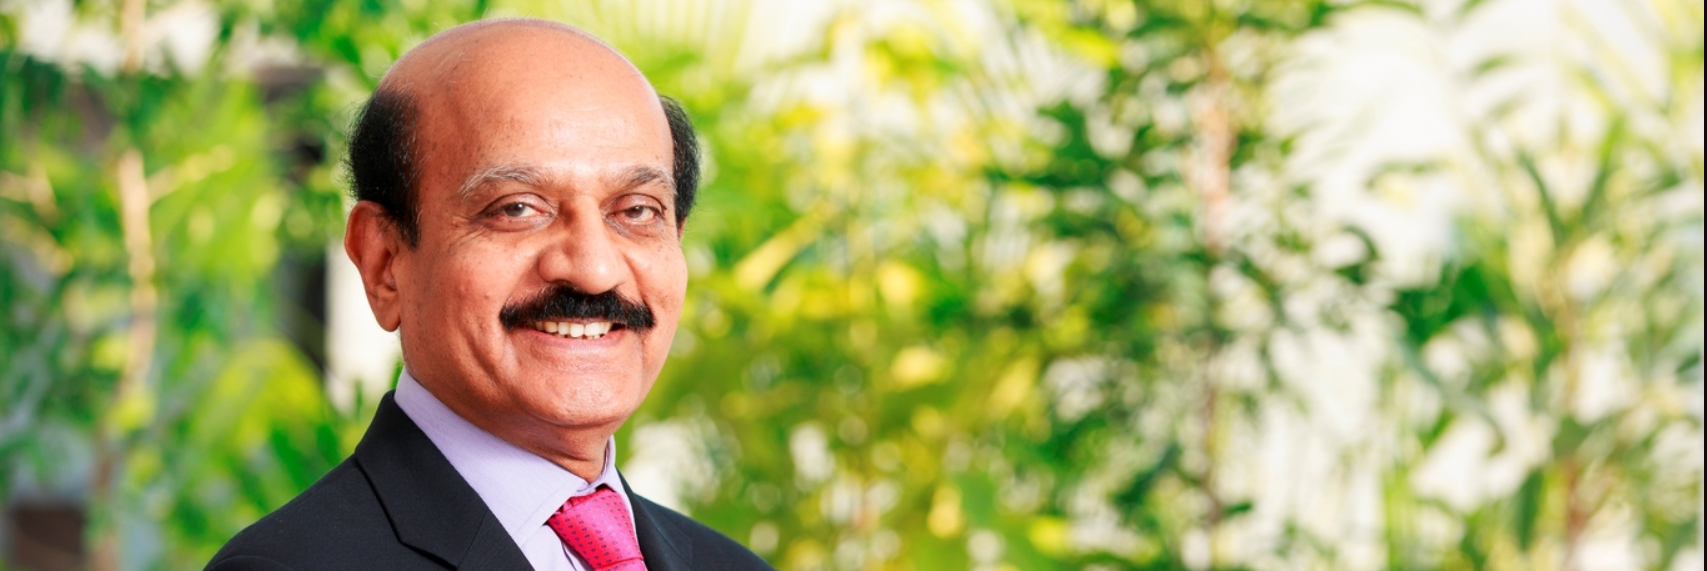 Cyient Founder, BVR Mohan Reddy, Conferred with Lifetime Achievement Award at the 26th HYSEA Annual ...